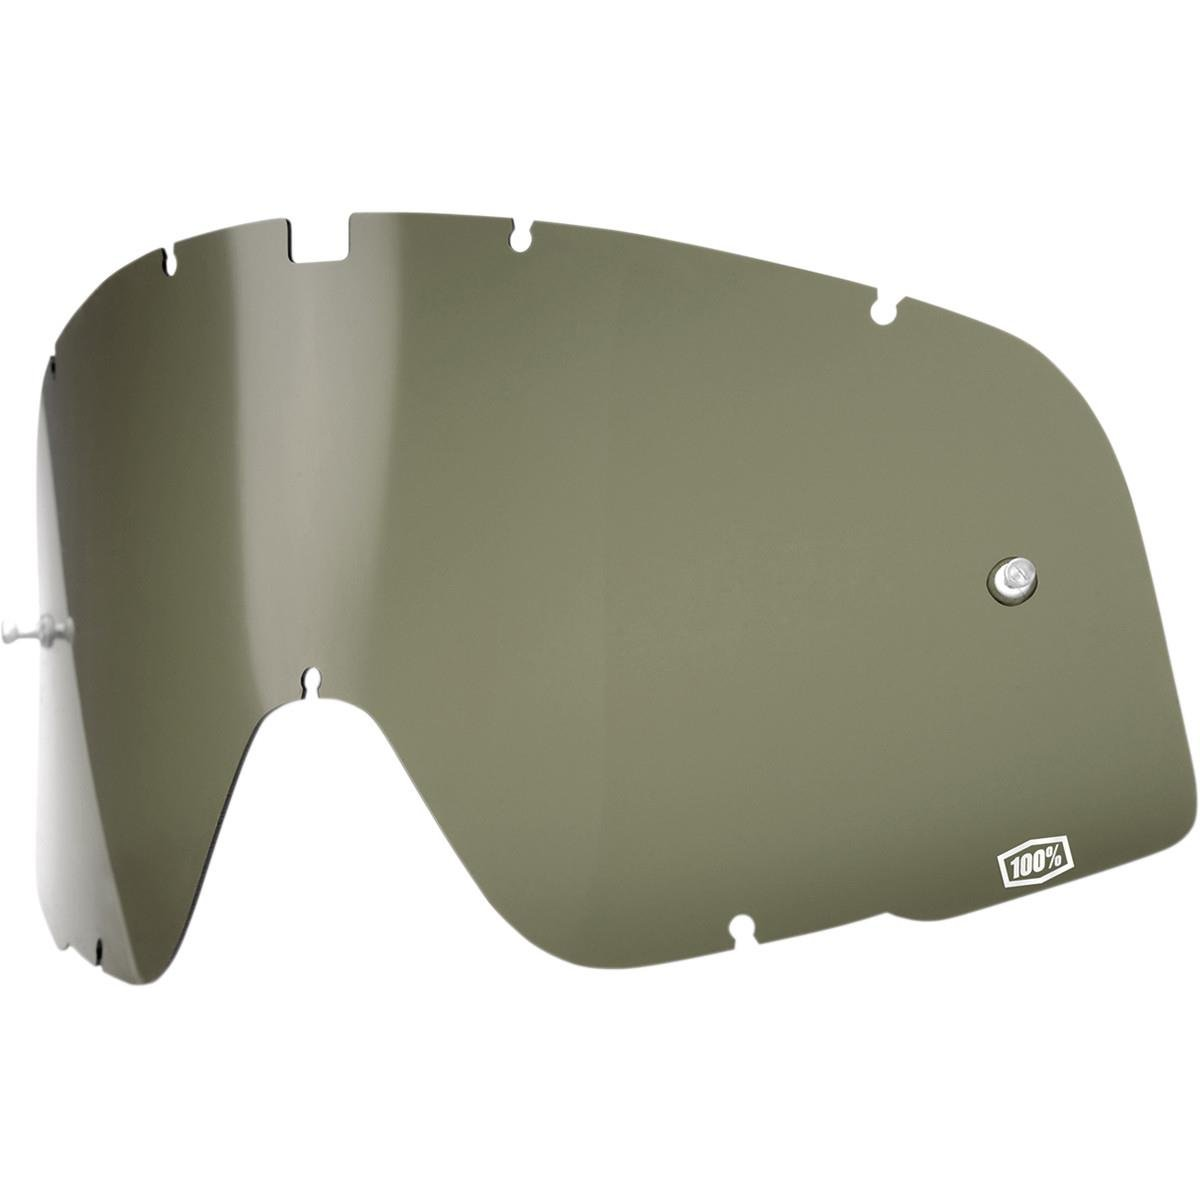 51000-005-12 100/% Speedlab Barstow Replacement Dalloz Curved Lens-Olive Green, Free Size